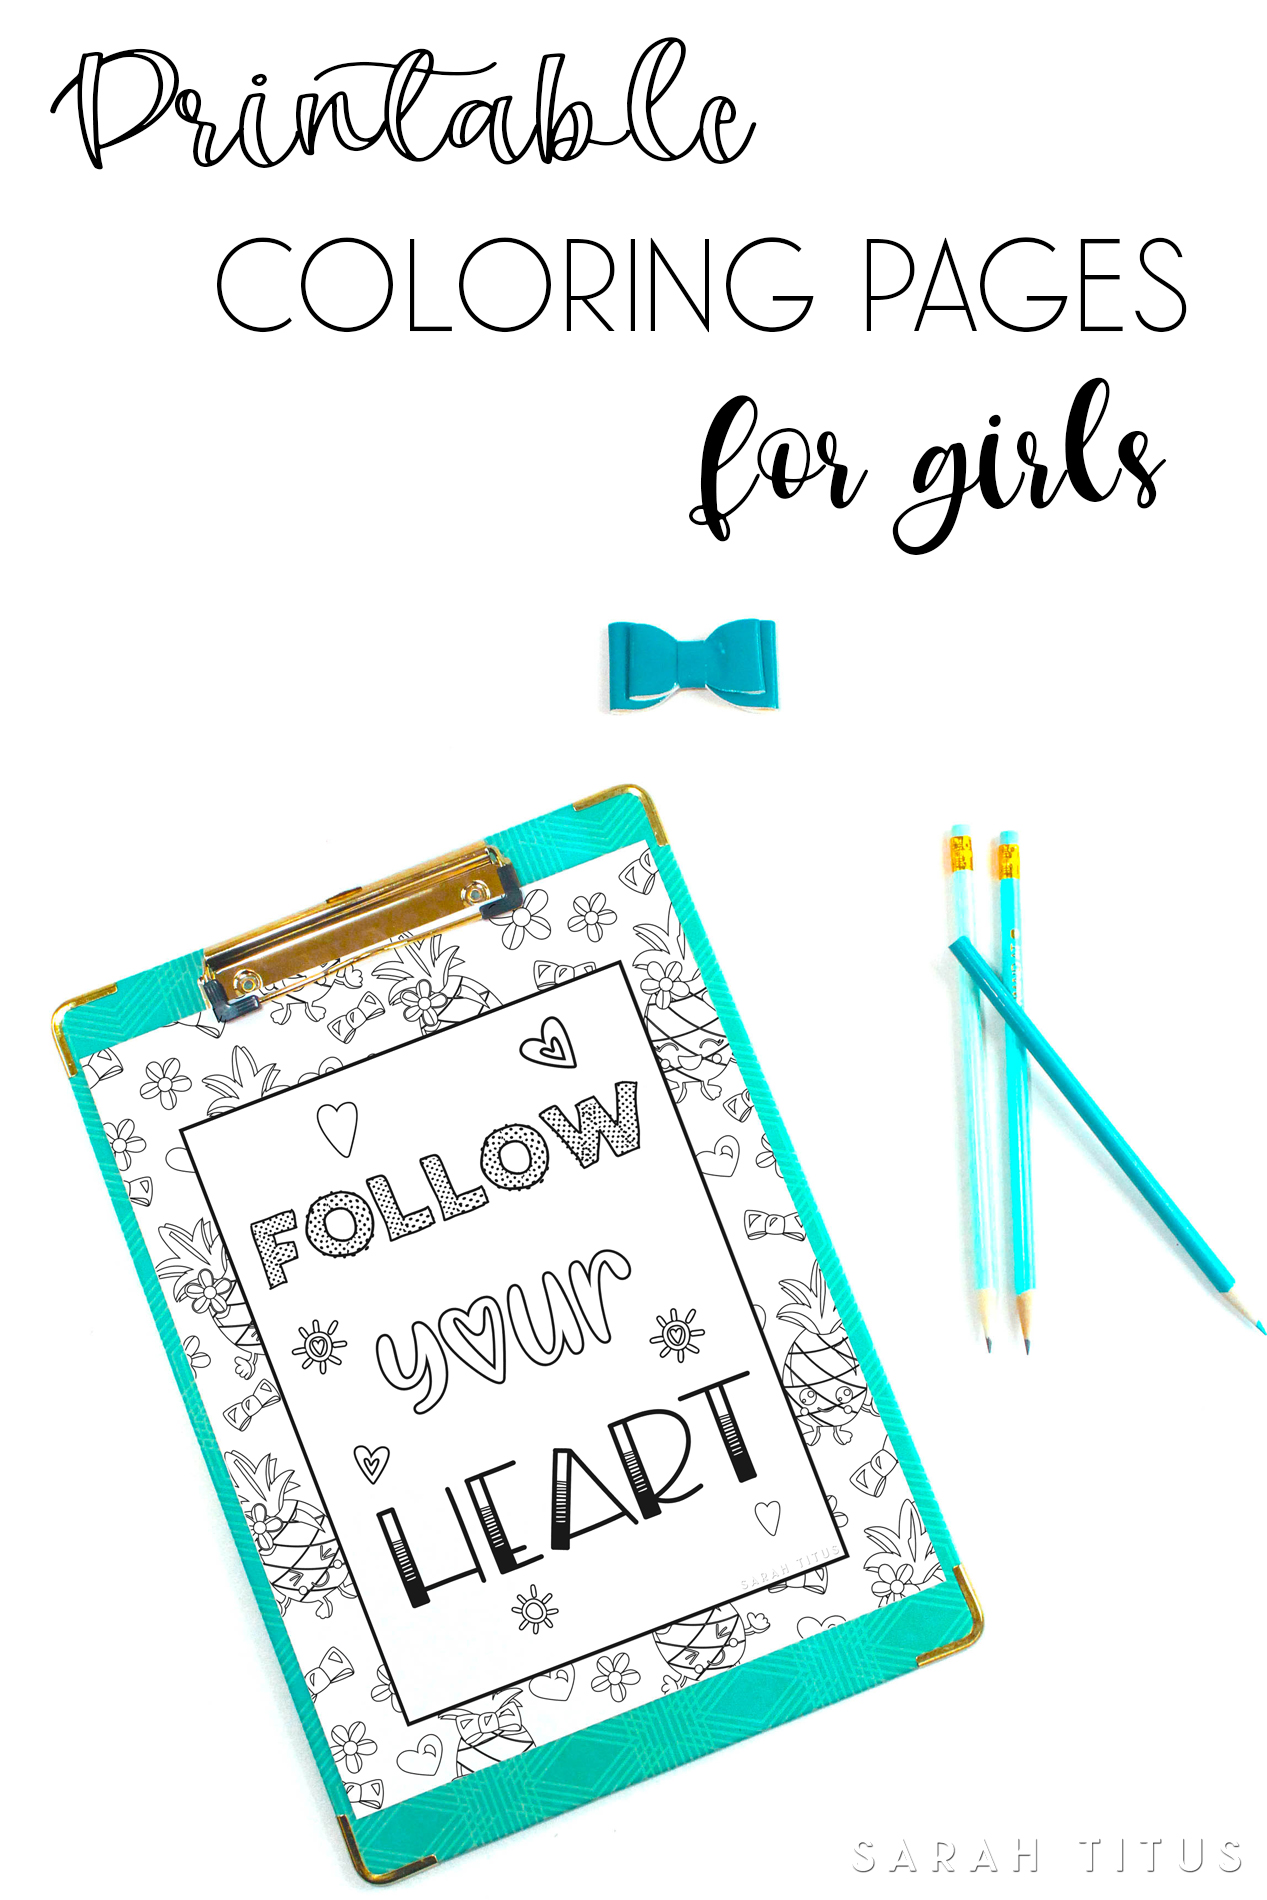 Printable Coloring Pages For Girls Sarah Titus From Homeless To 8 Figures